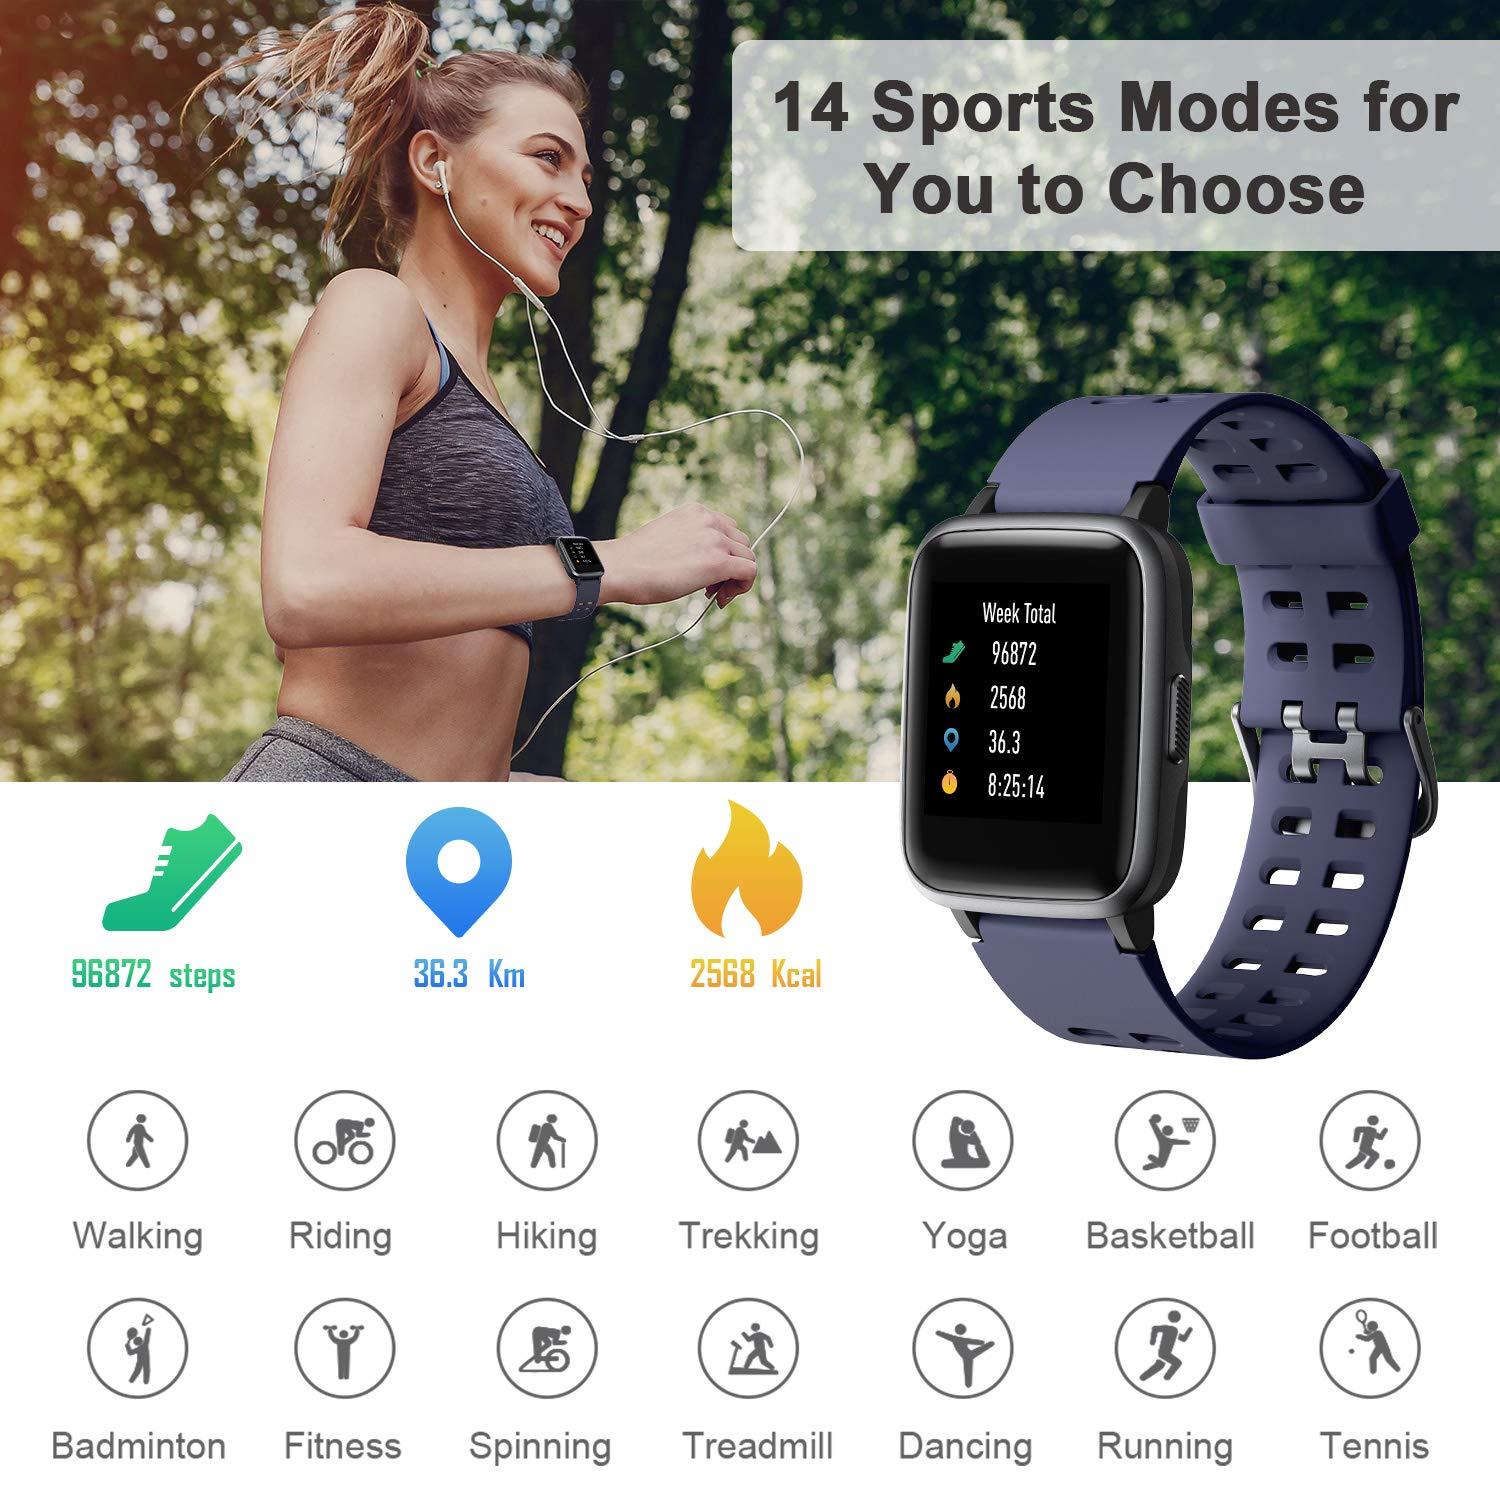 Ntech Veryfit ID205 Fitness Tracker Smart Watch With Heartrate Monitor | Monthly Madness